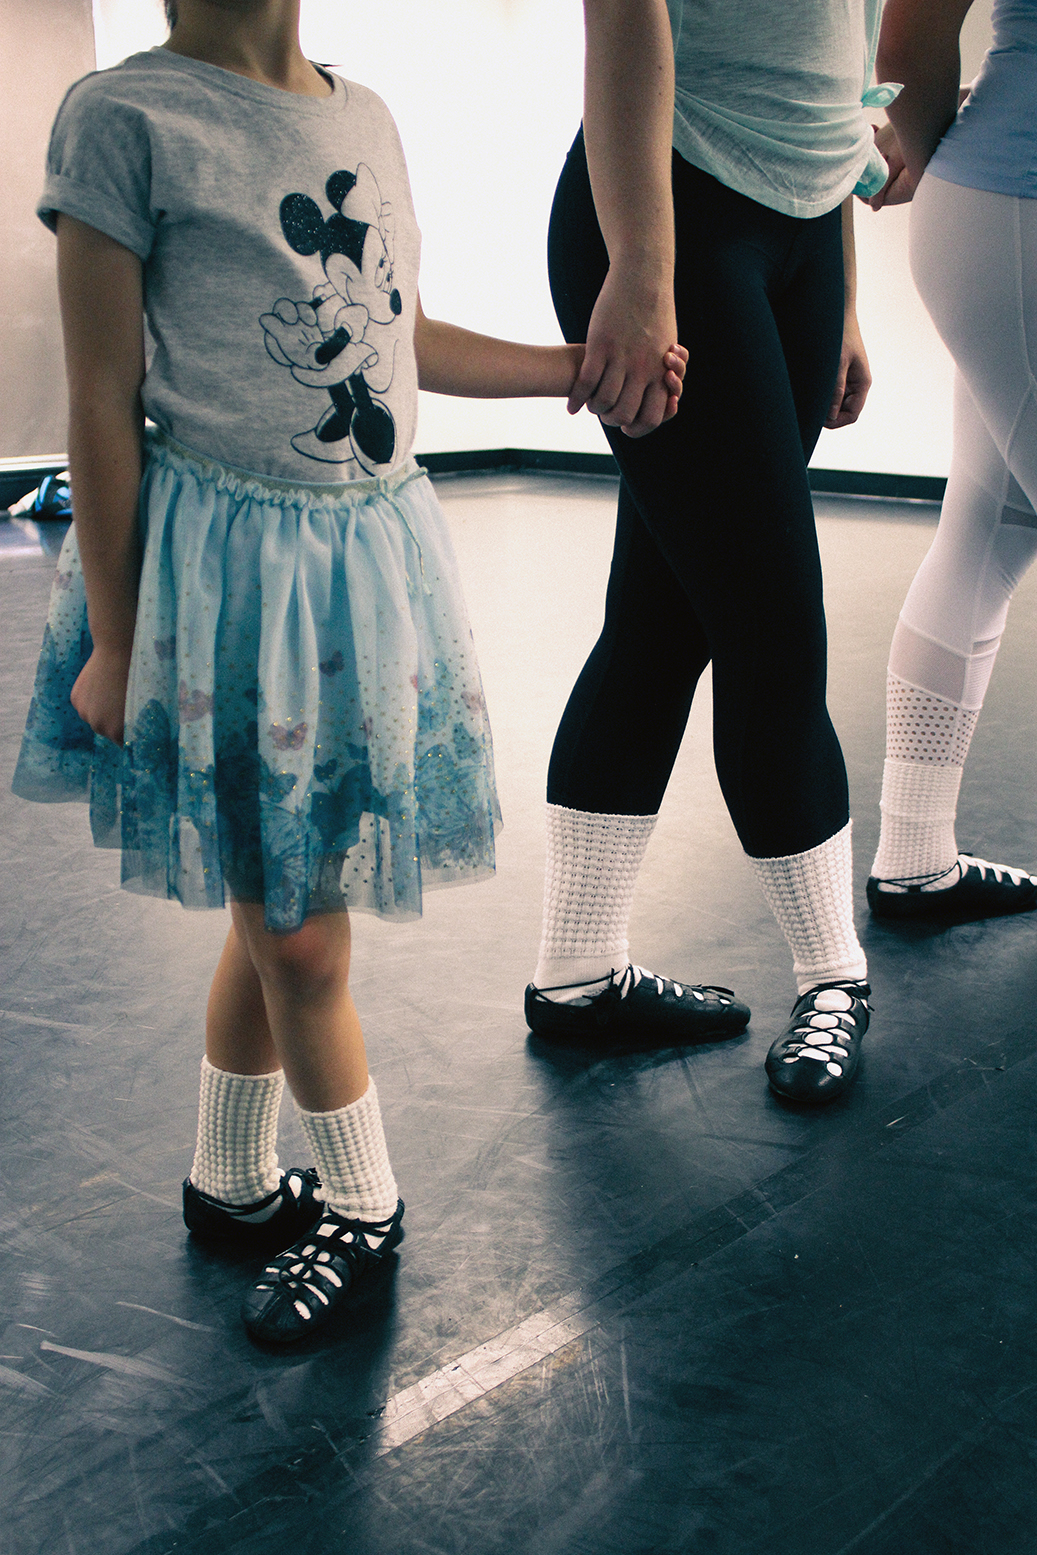 A beginner Irish dancer in soft shoes holds hands with an older girl